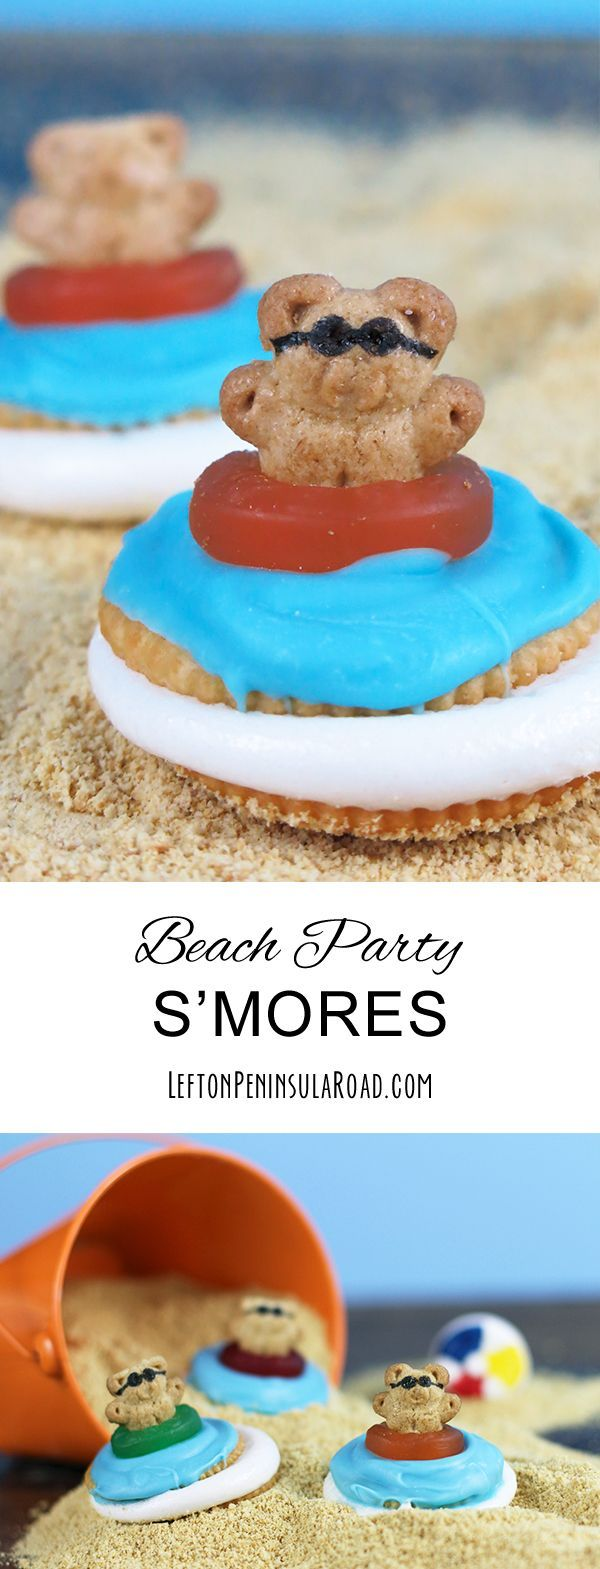 Make these adorable S'mores treats for your next pool or beach party this summer!